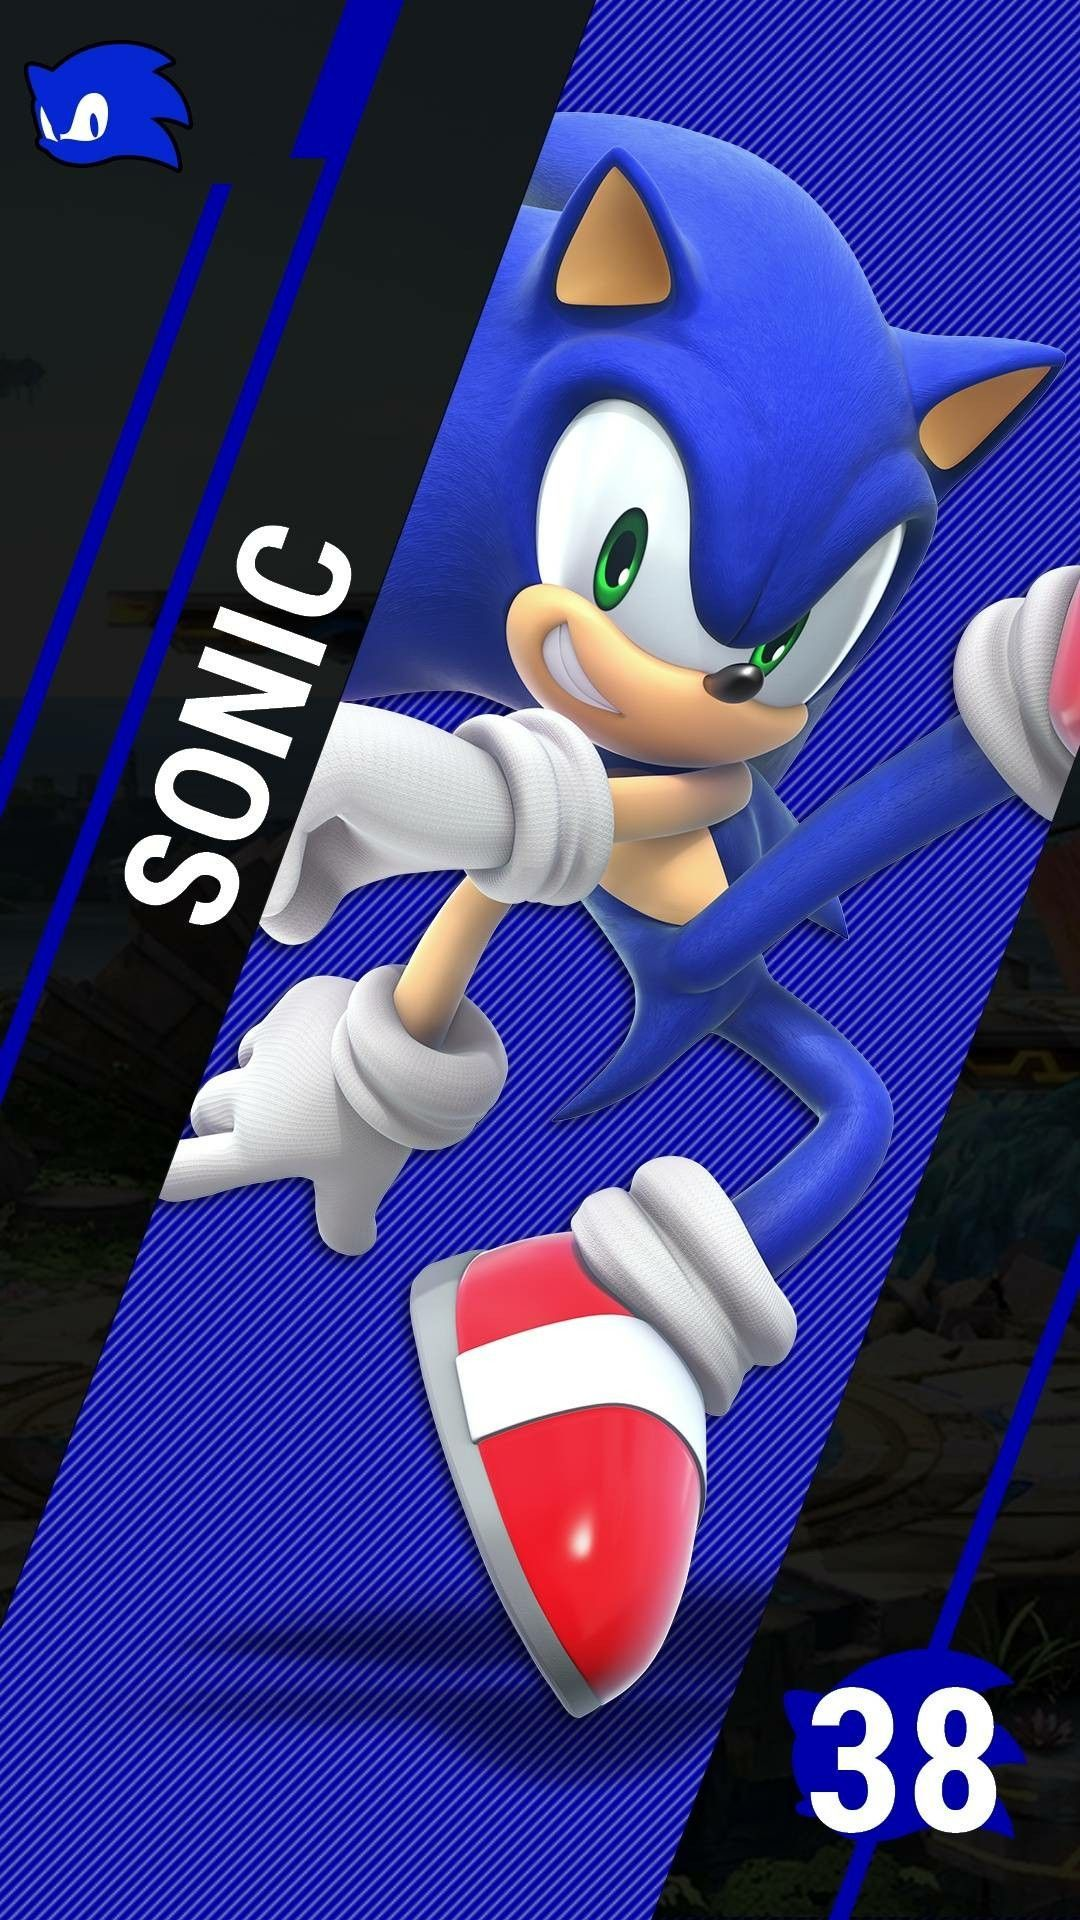 Epic Sonic Photo Epic Sonic Photo wallpapers Sonic